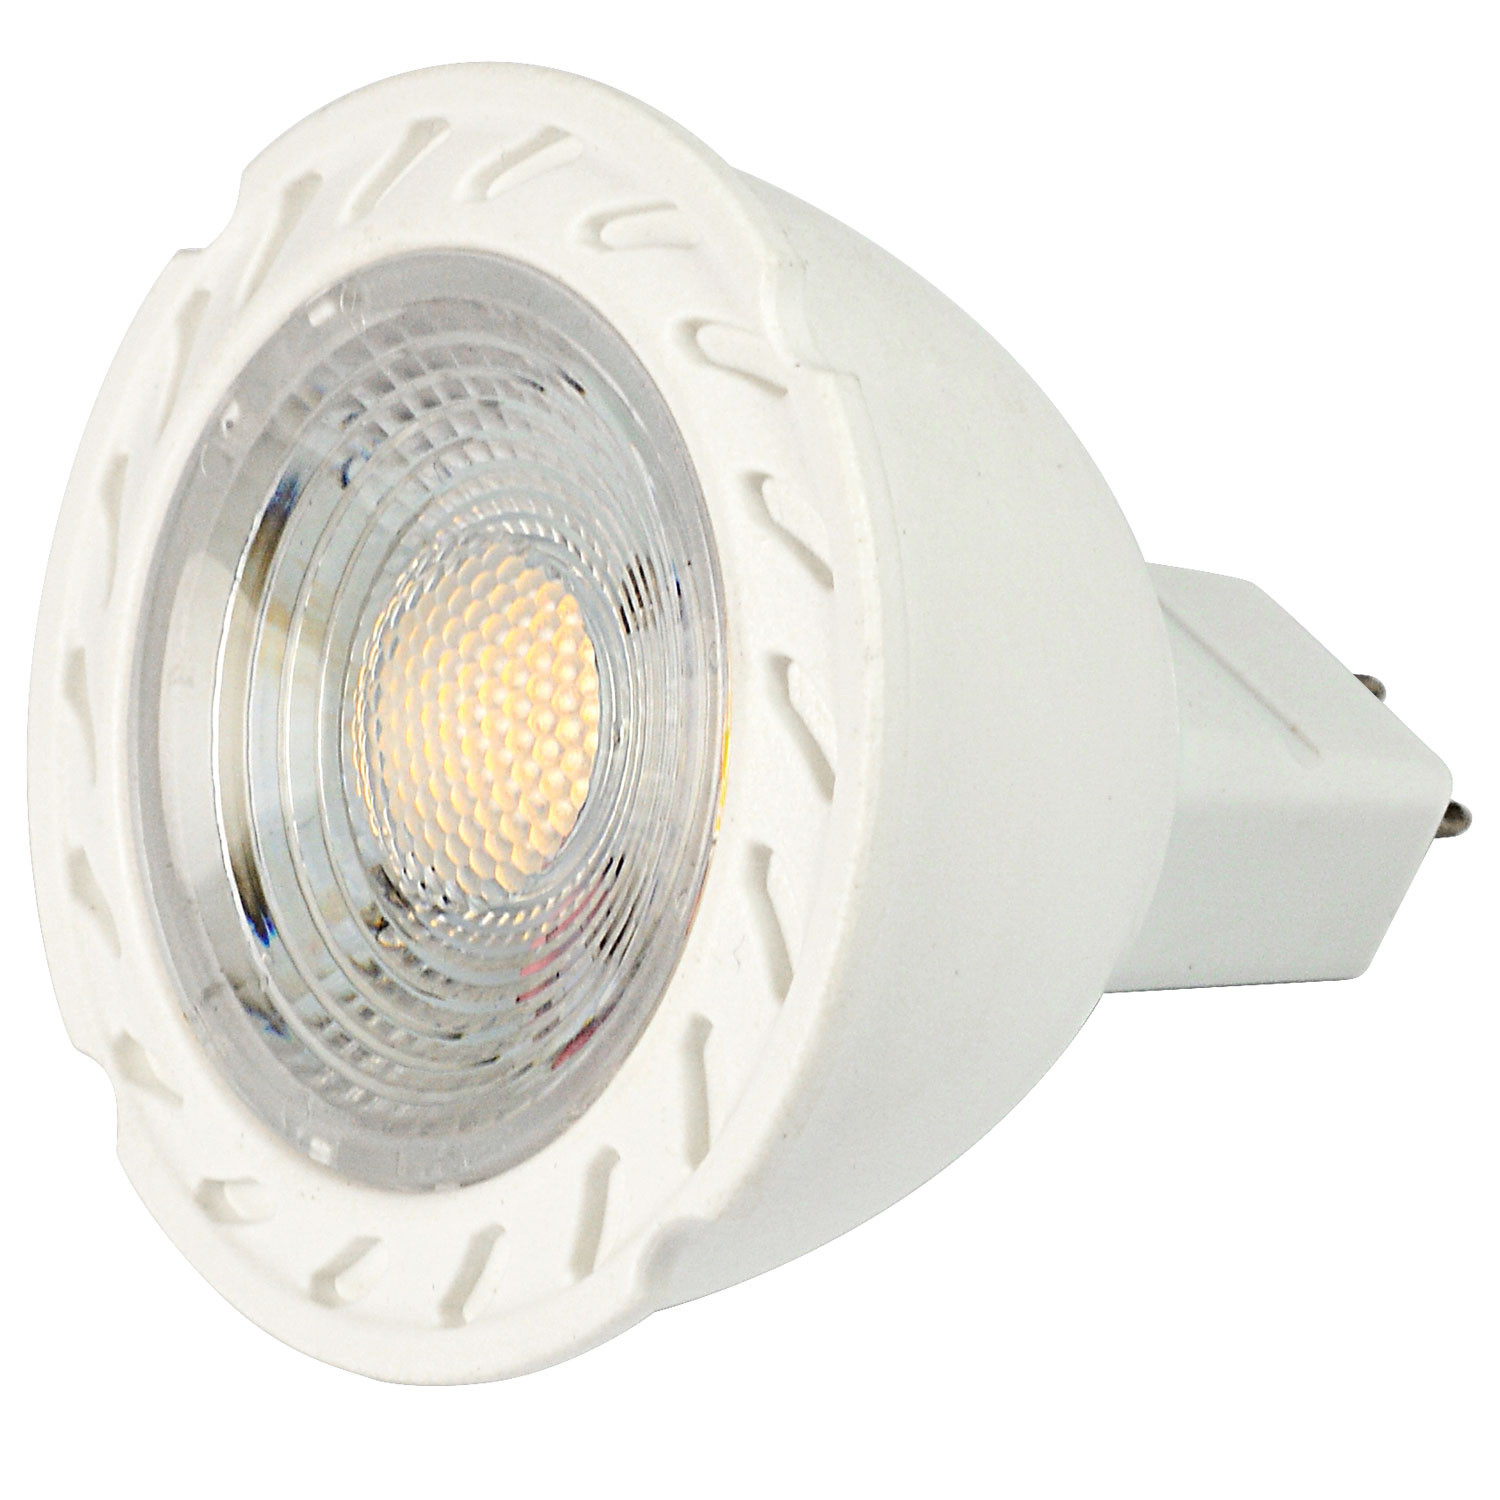 MENGS® MR16 5W LED Spotlight 6x 2835 SMD LED Bulb Lamp In Warm White Energy-Saving Light